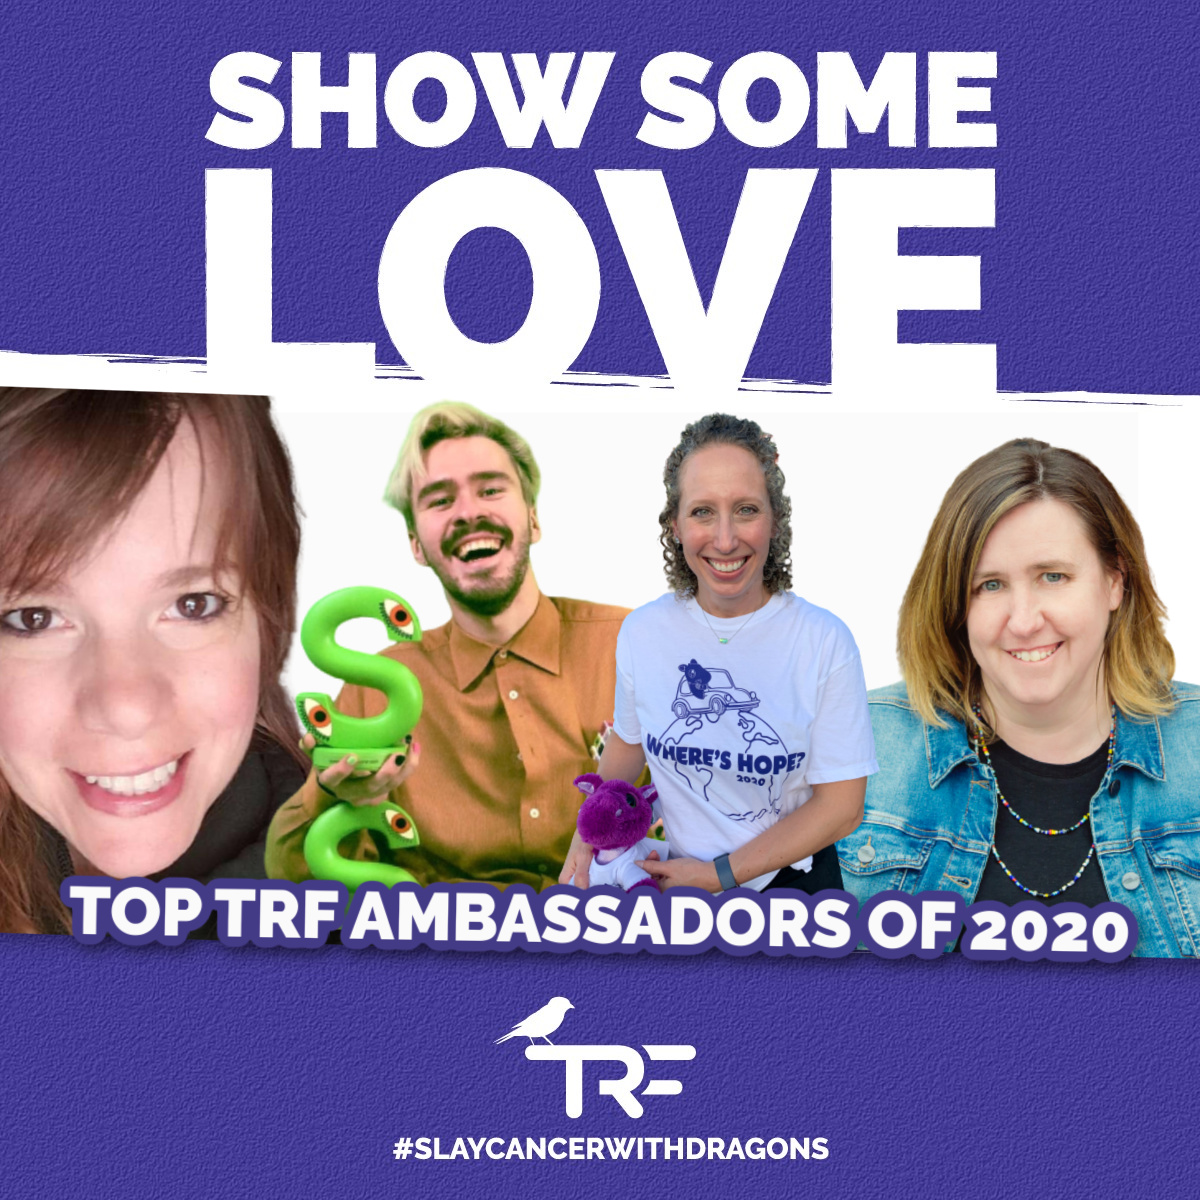 Say hi to Amy, Daniel, Tara and Kelly. These 4 TRF Ambassadors come in on TOP in 2020, collectively raising almost $20,000 for our TRF families.   Want to join our Ambassador Program? Every penny counts!